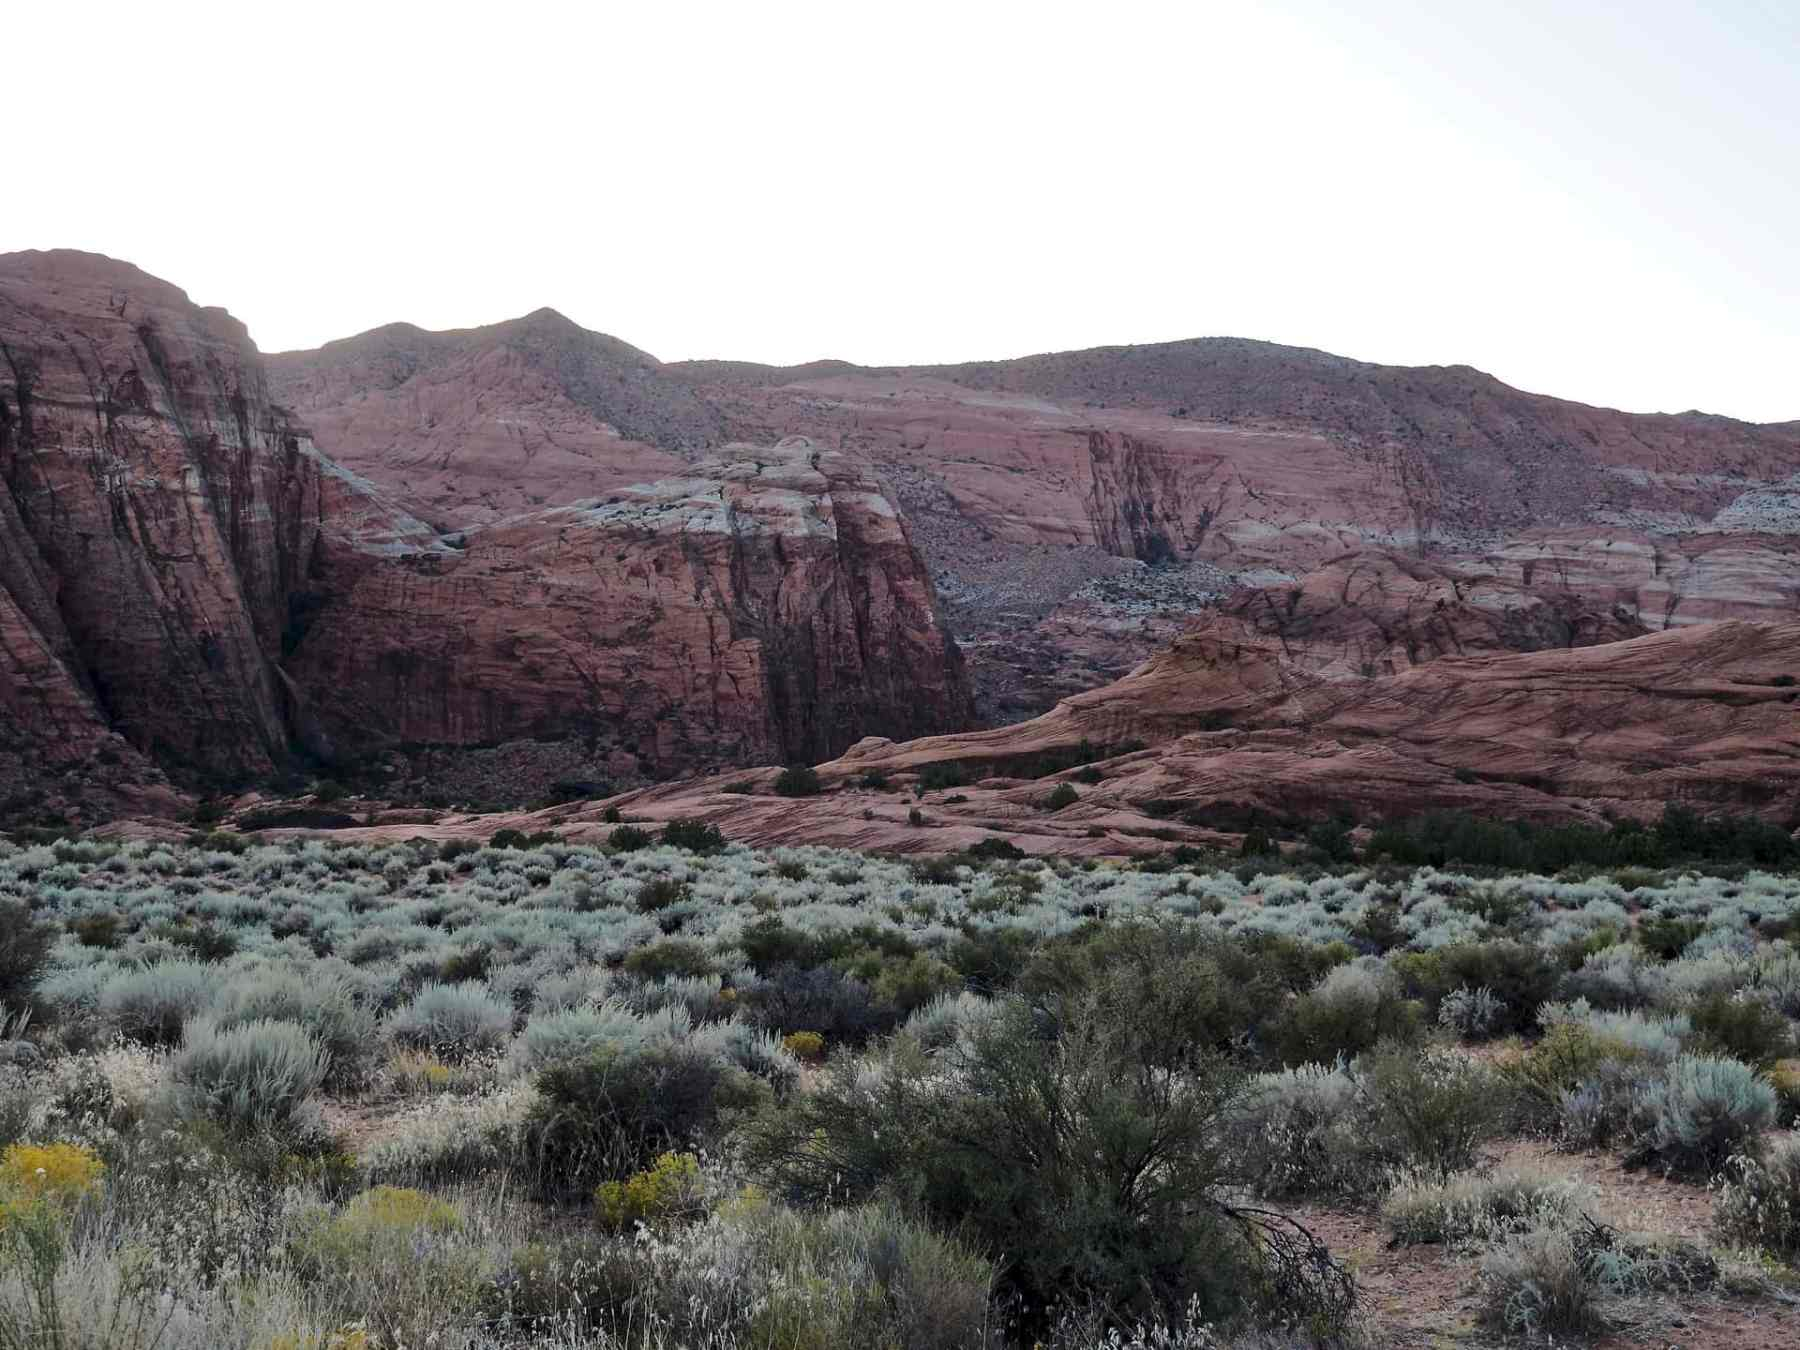 great contrast between the scrub brush and red rock